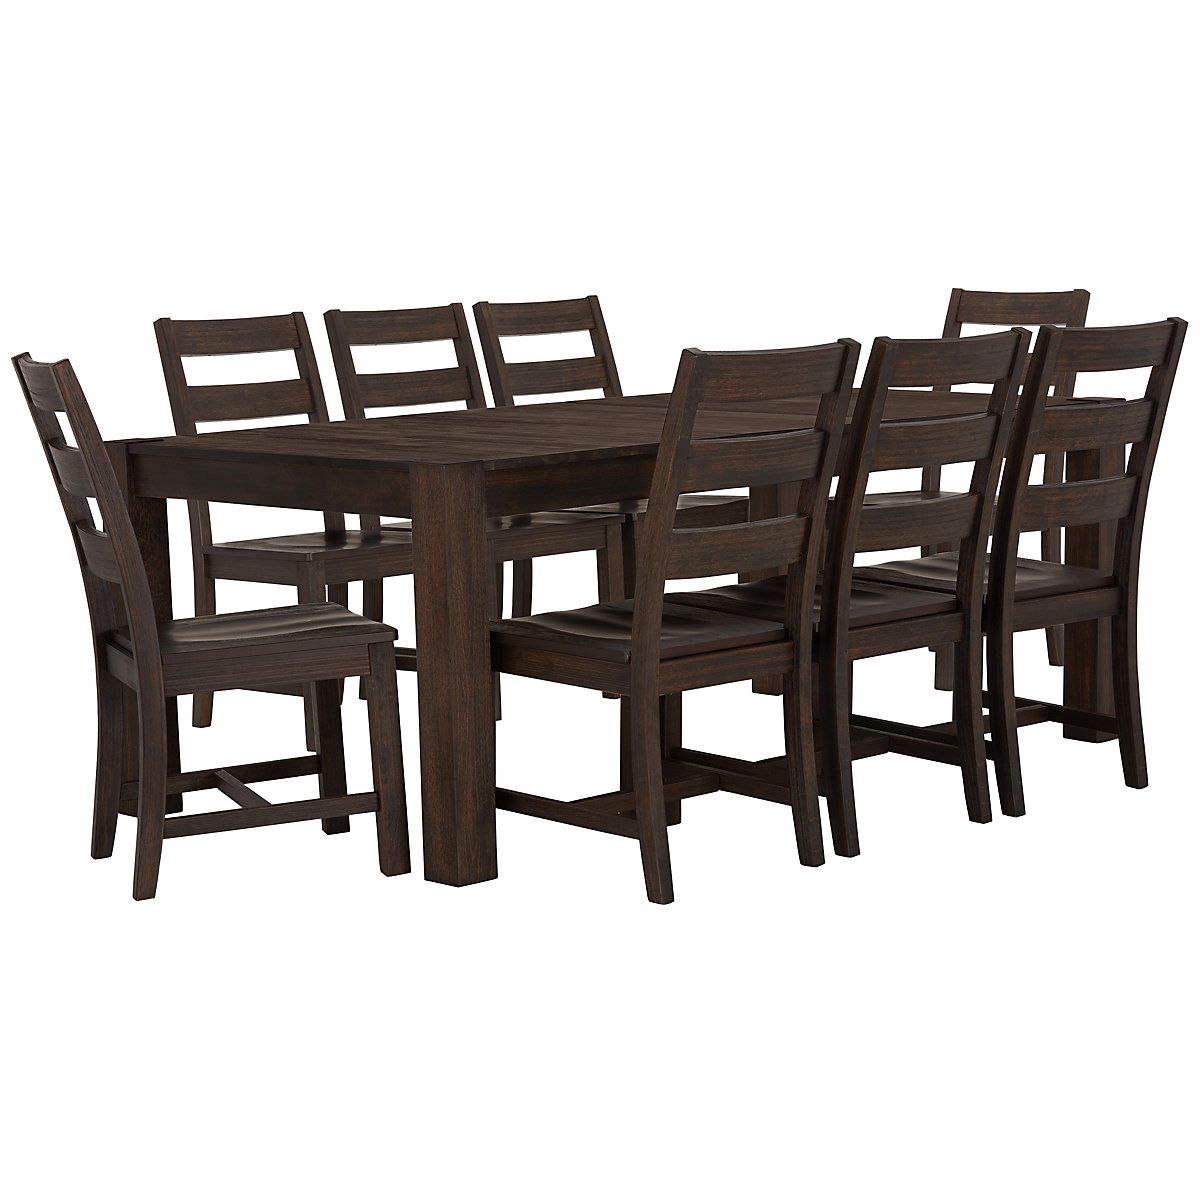 City Furniture: Holden Mid Tone Table & 4 Wood Chairs